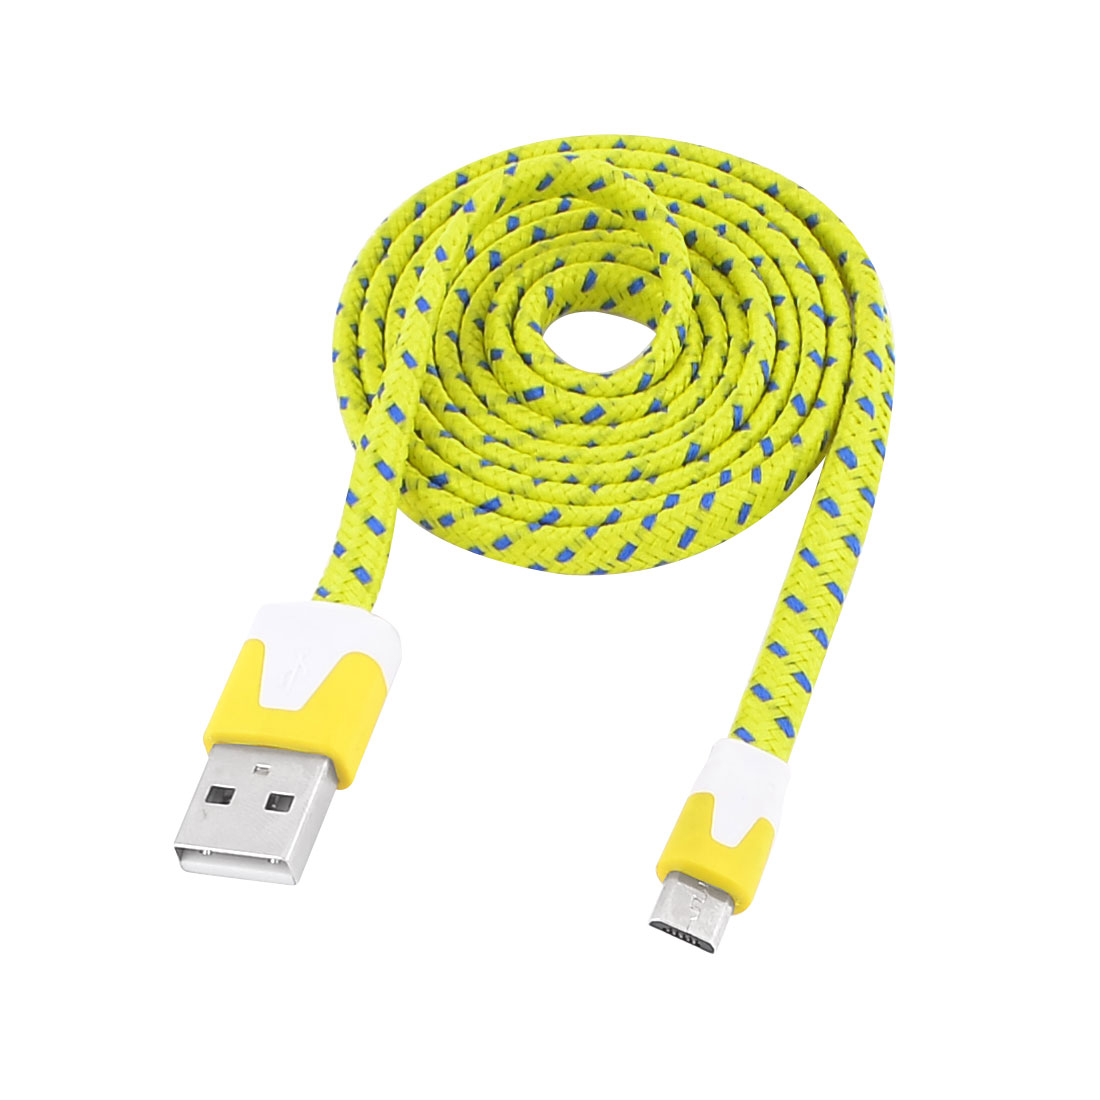 Yellow Nylon Wrapped USB 2.0 Type A Male to Micro B Male Adapter Cable Cord